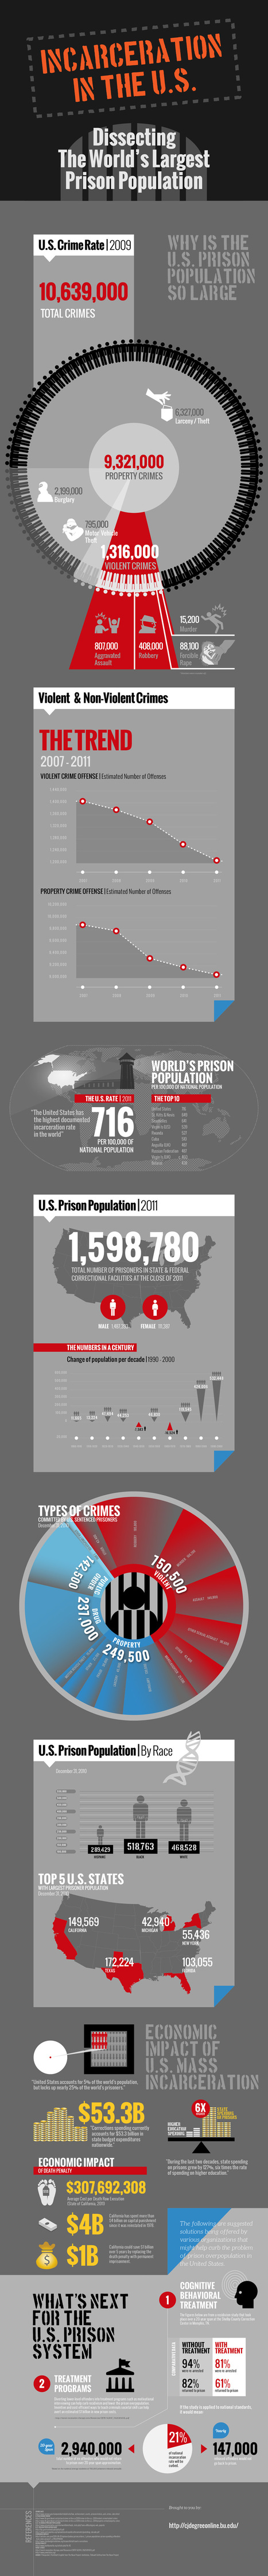 Prison Education :-Inmate Education -Correctional Education - Prison Education News - IncarcerationNation | Corrections Education | Scoop.it